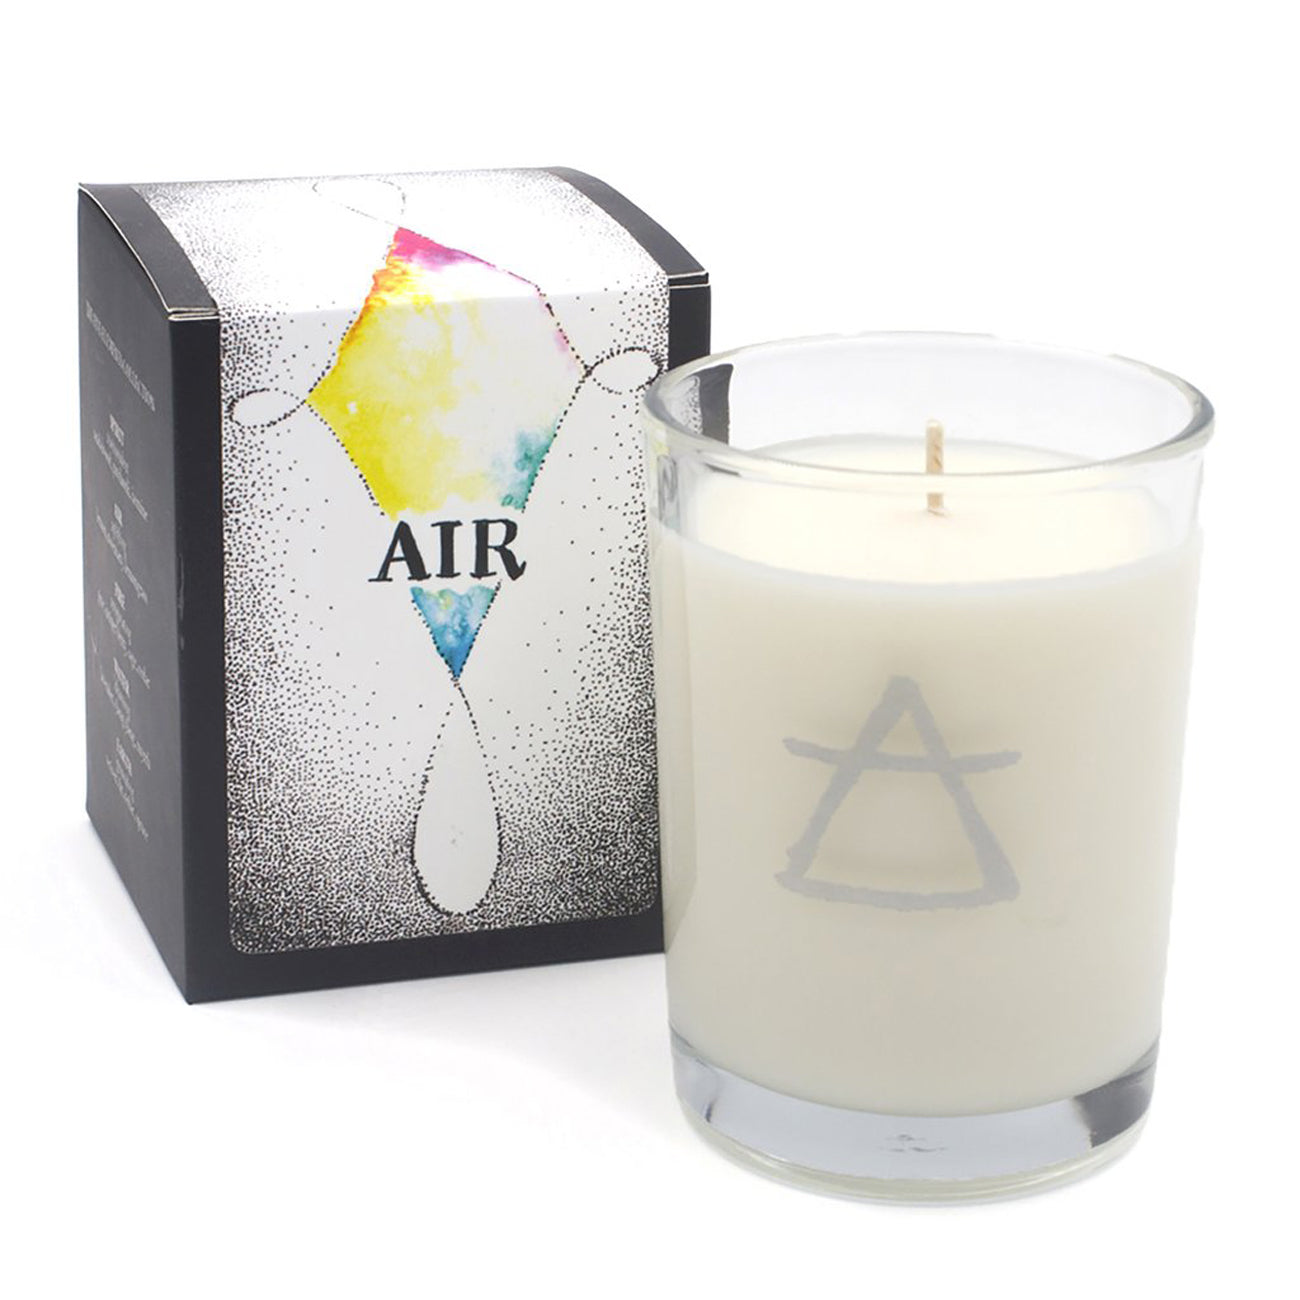 The Wild Unknown Five Elements Candle: Air